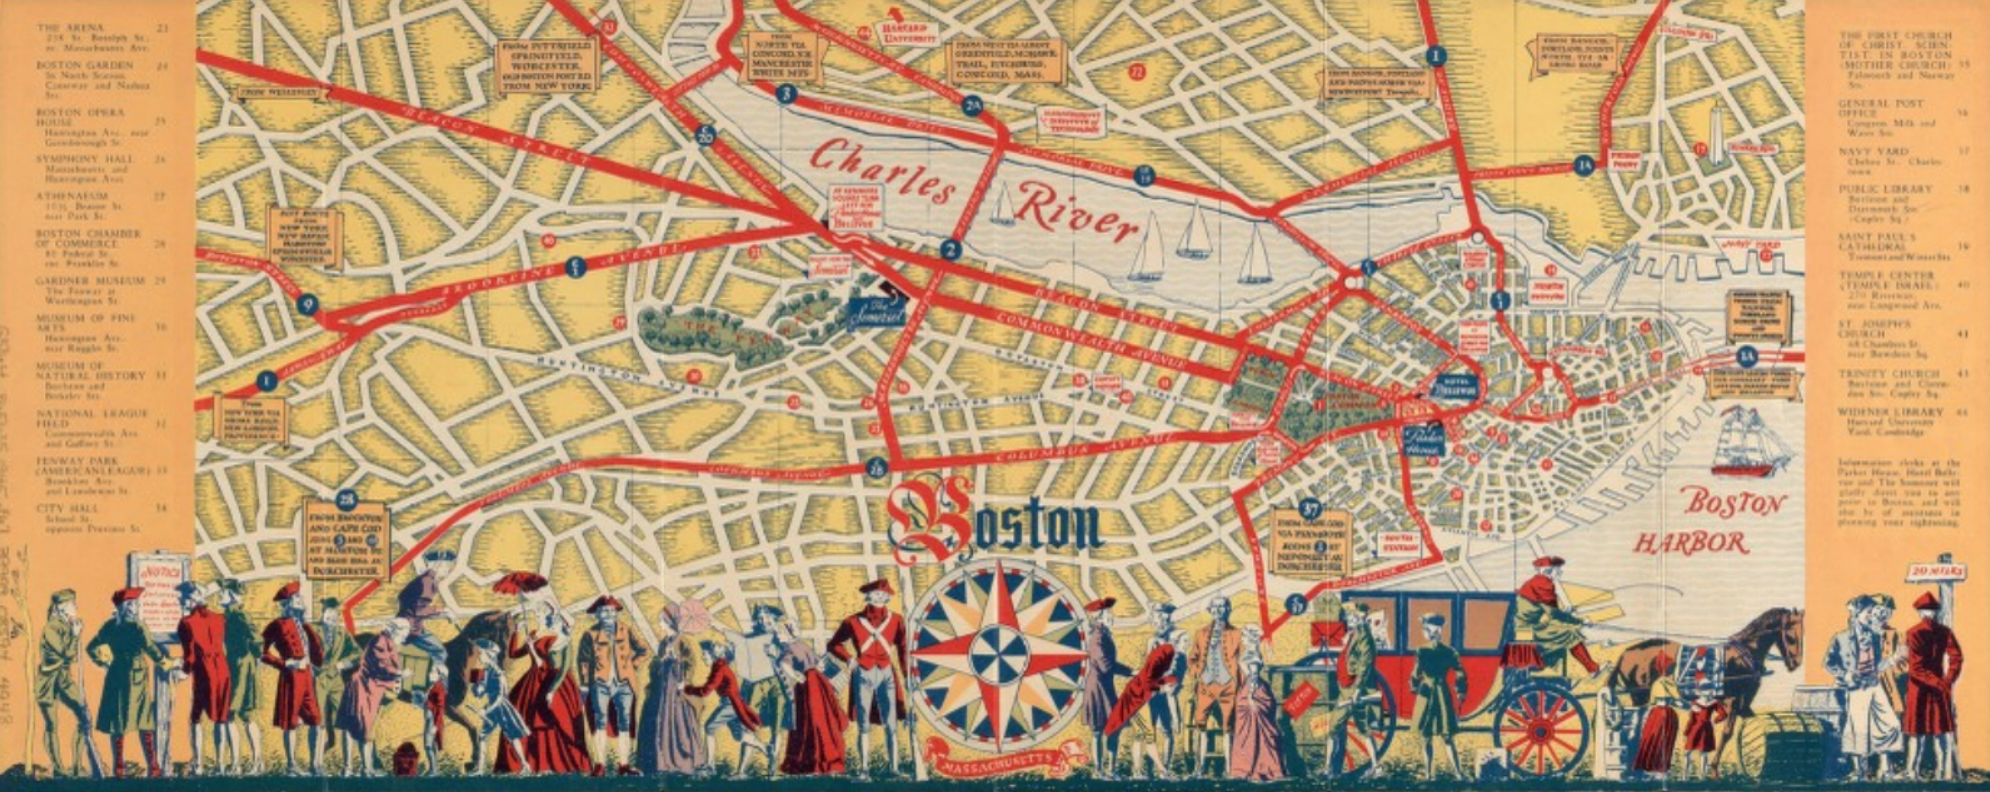 Tourist Map of Boston